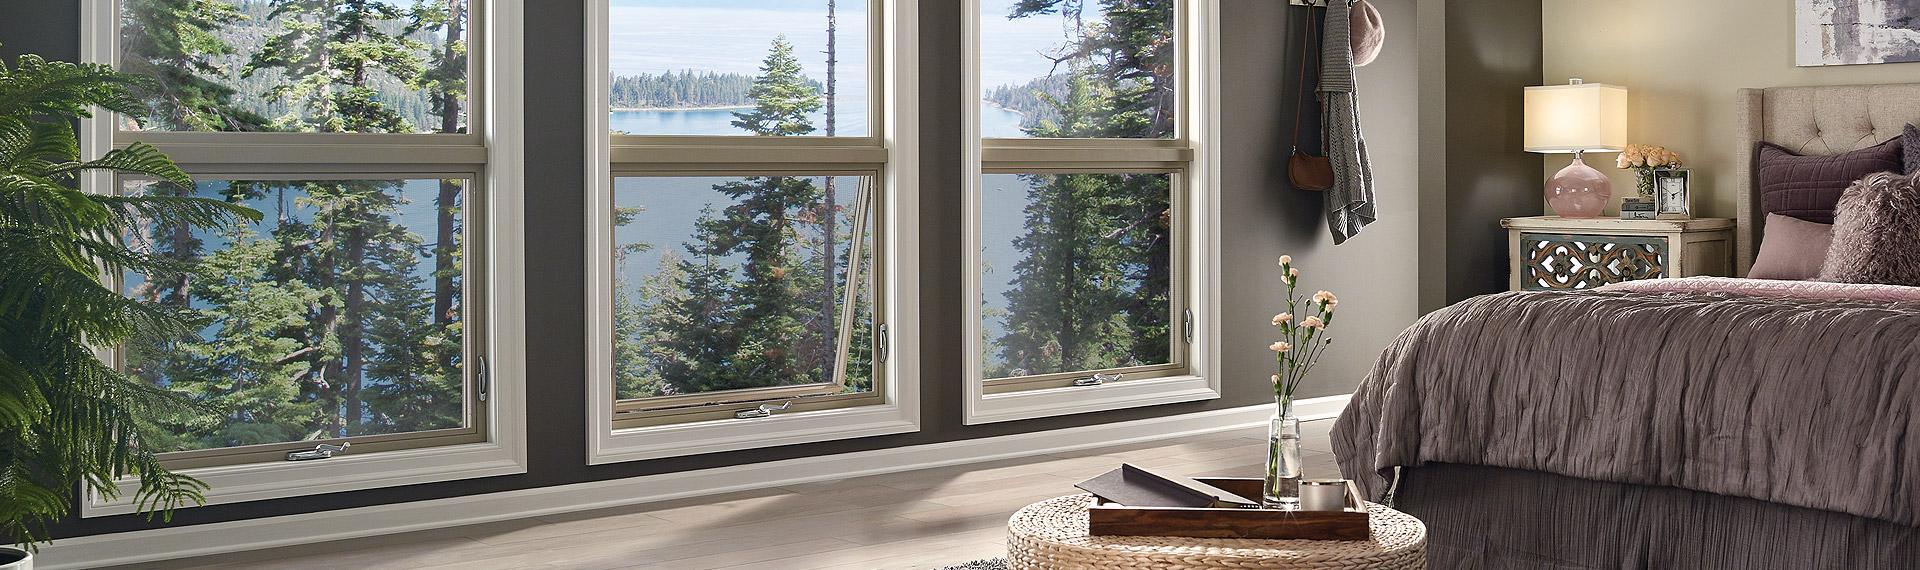 Ultra Series fiberglass awning picture windows